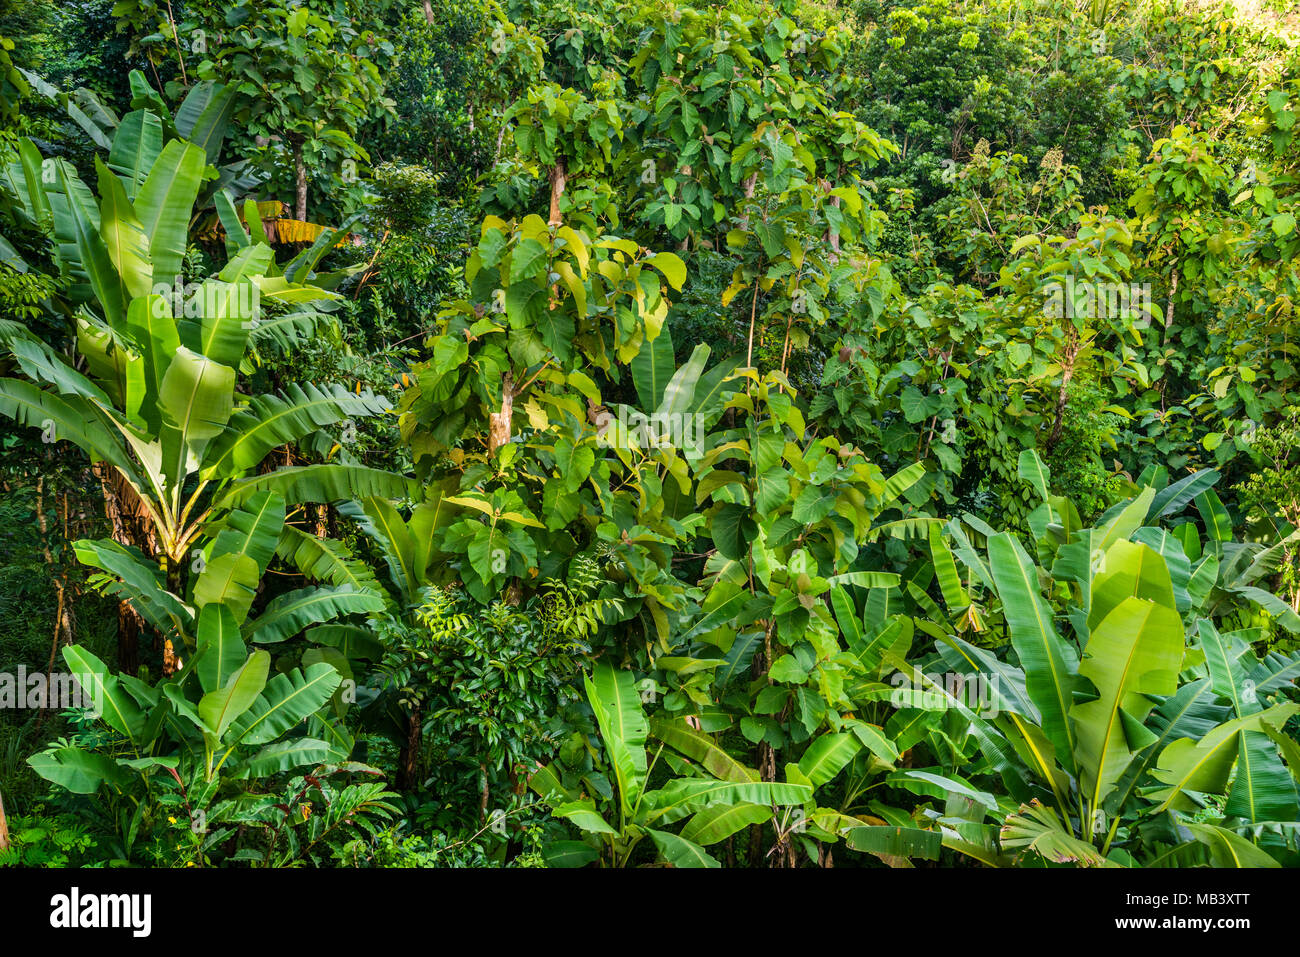 lush tropical vegetation at Bukit Barede near Borobudur, Central Java, Indonesia - Stock Image